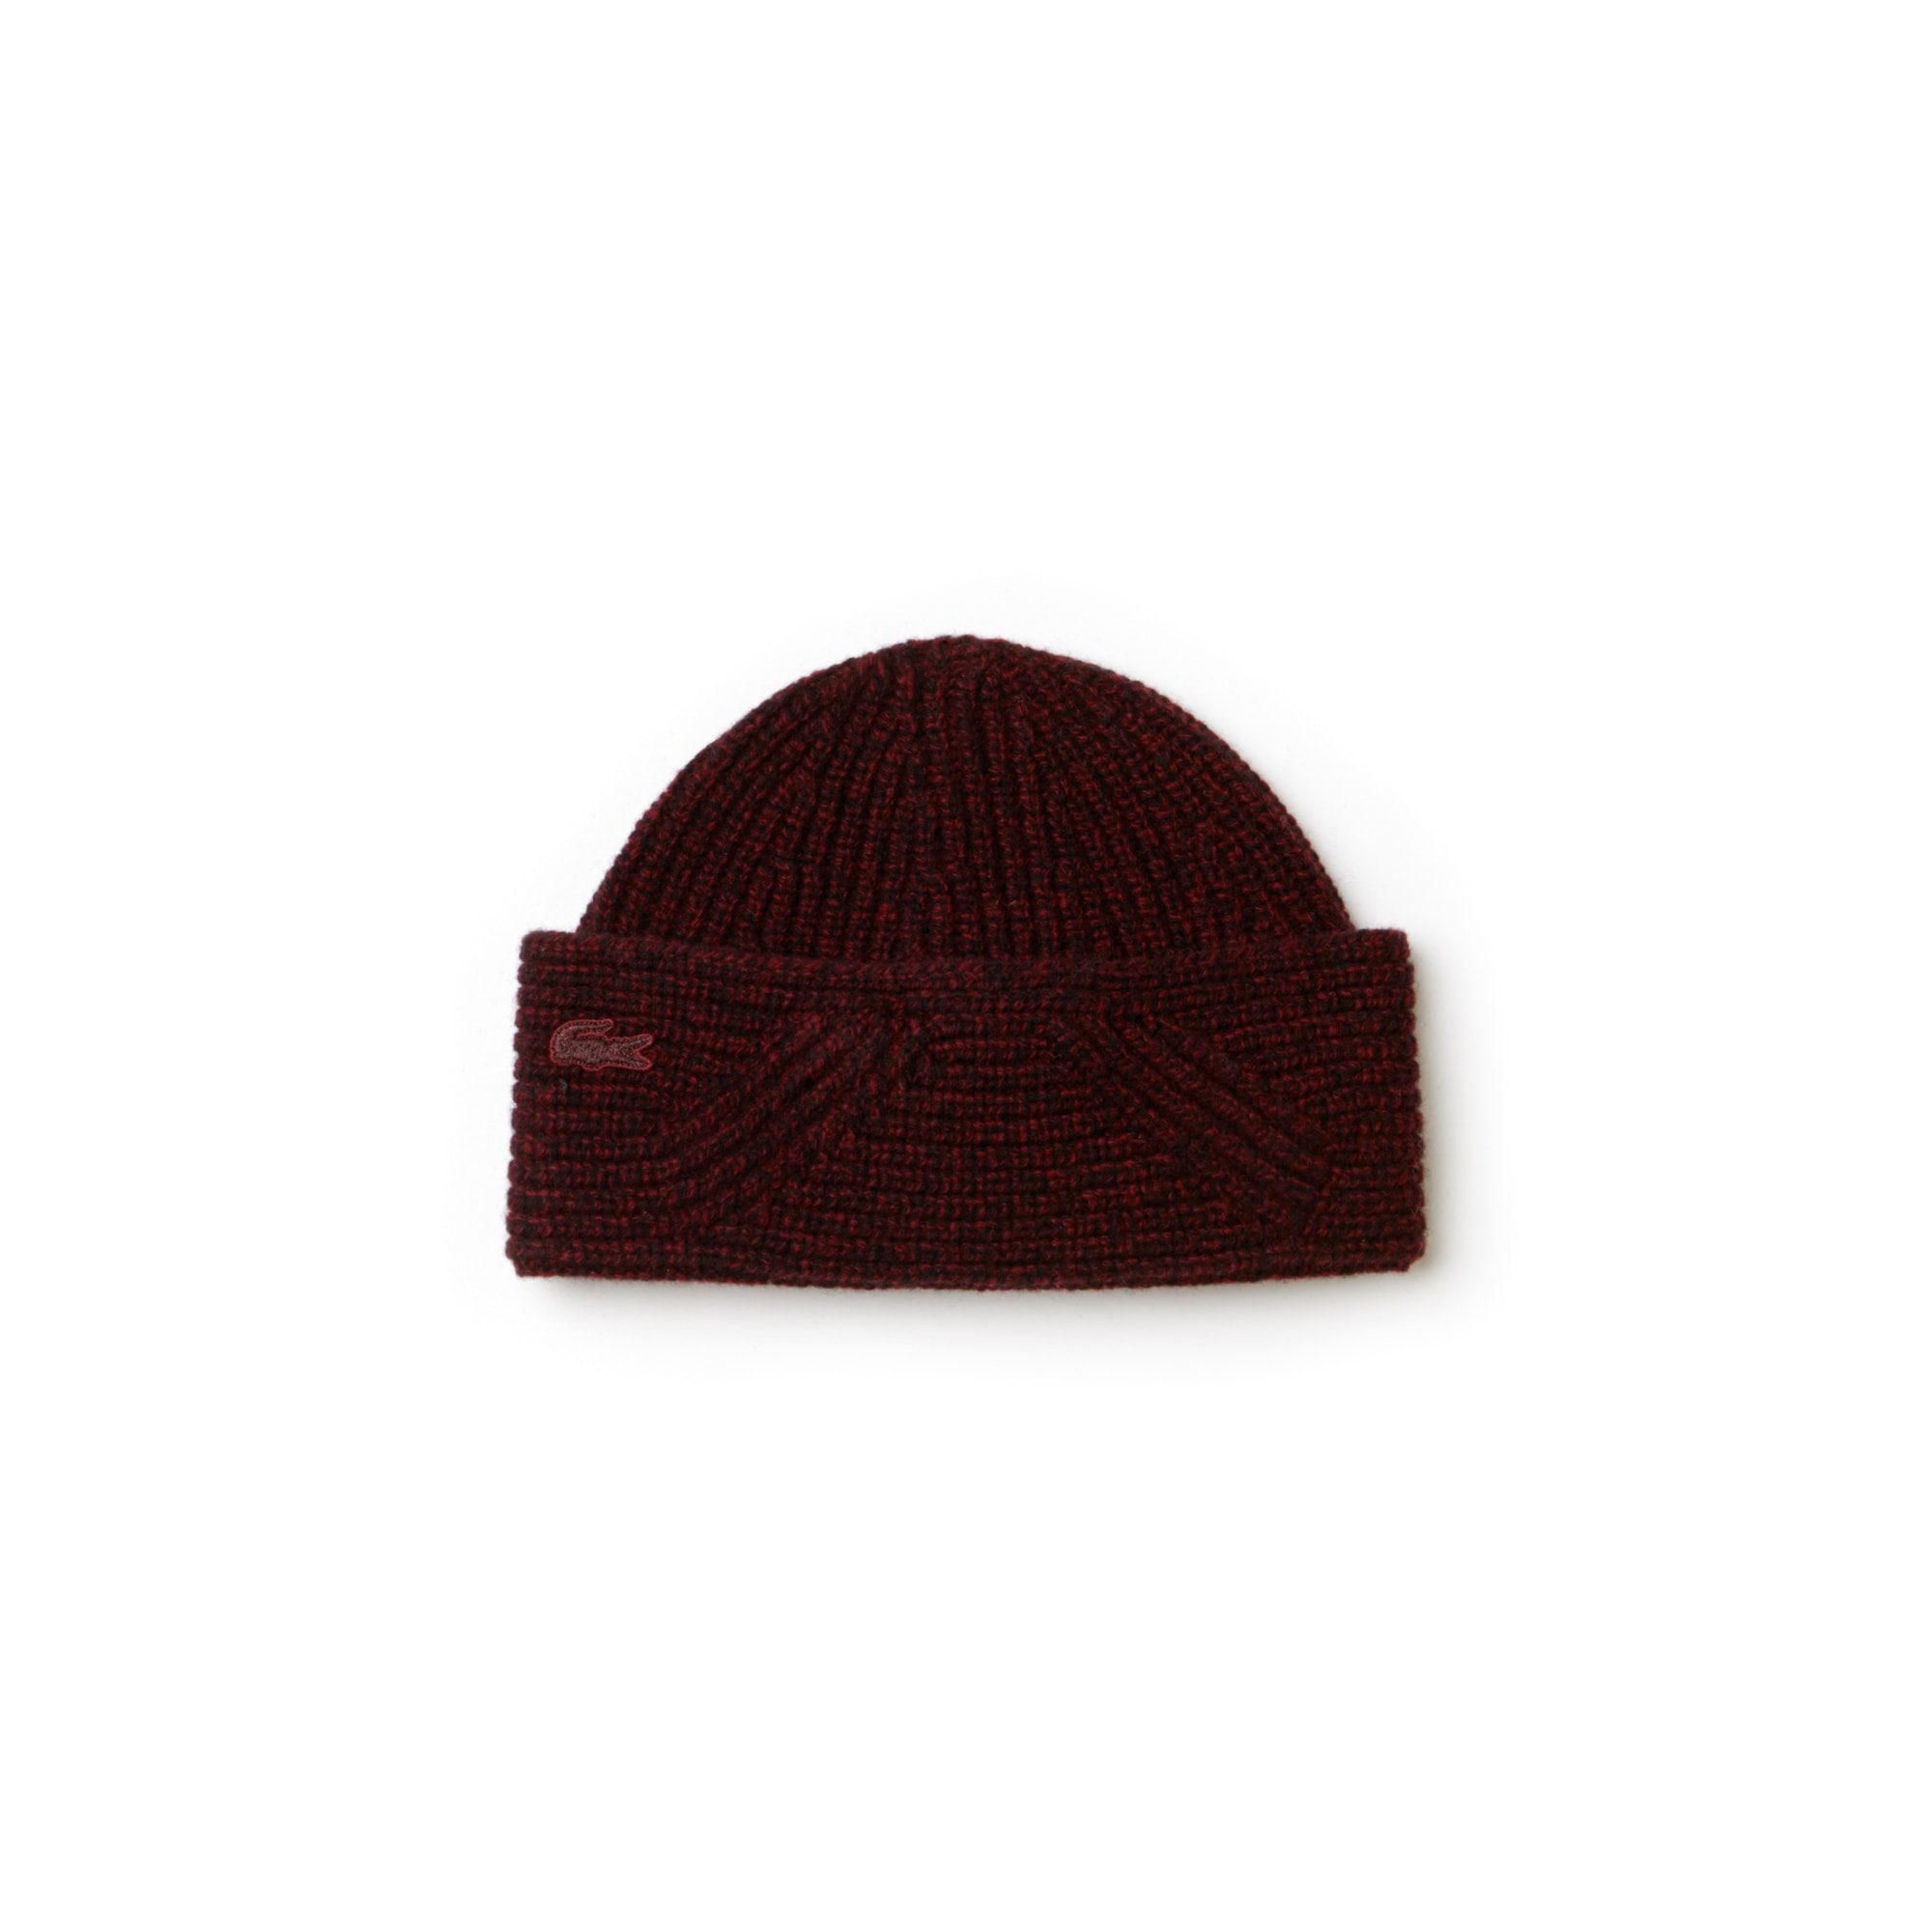 83db2a2b656 Lacoste Women S Ribbed Wool Beanie In Turkey Red 2 Mouline